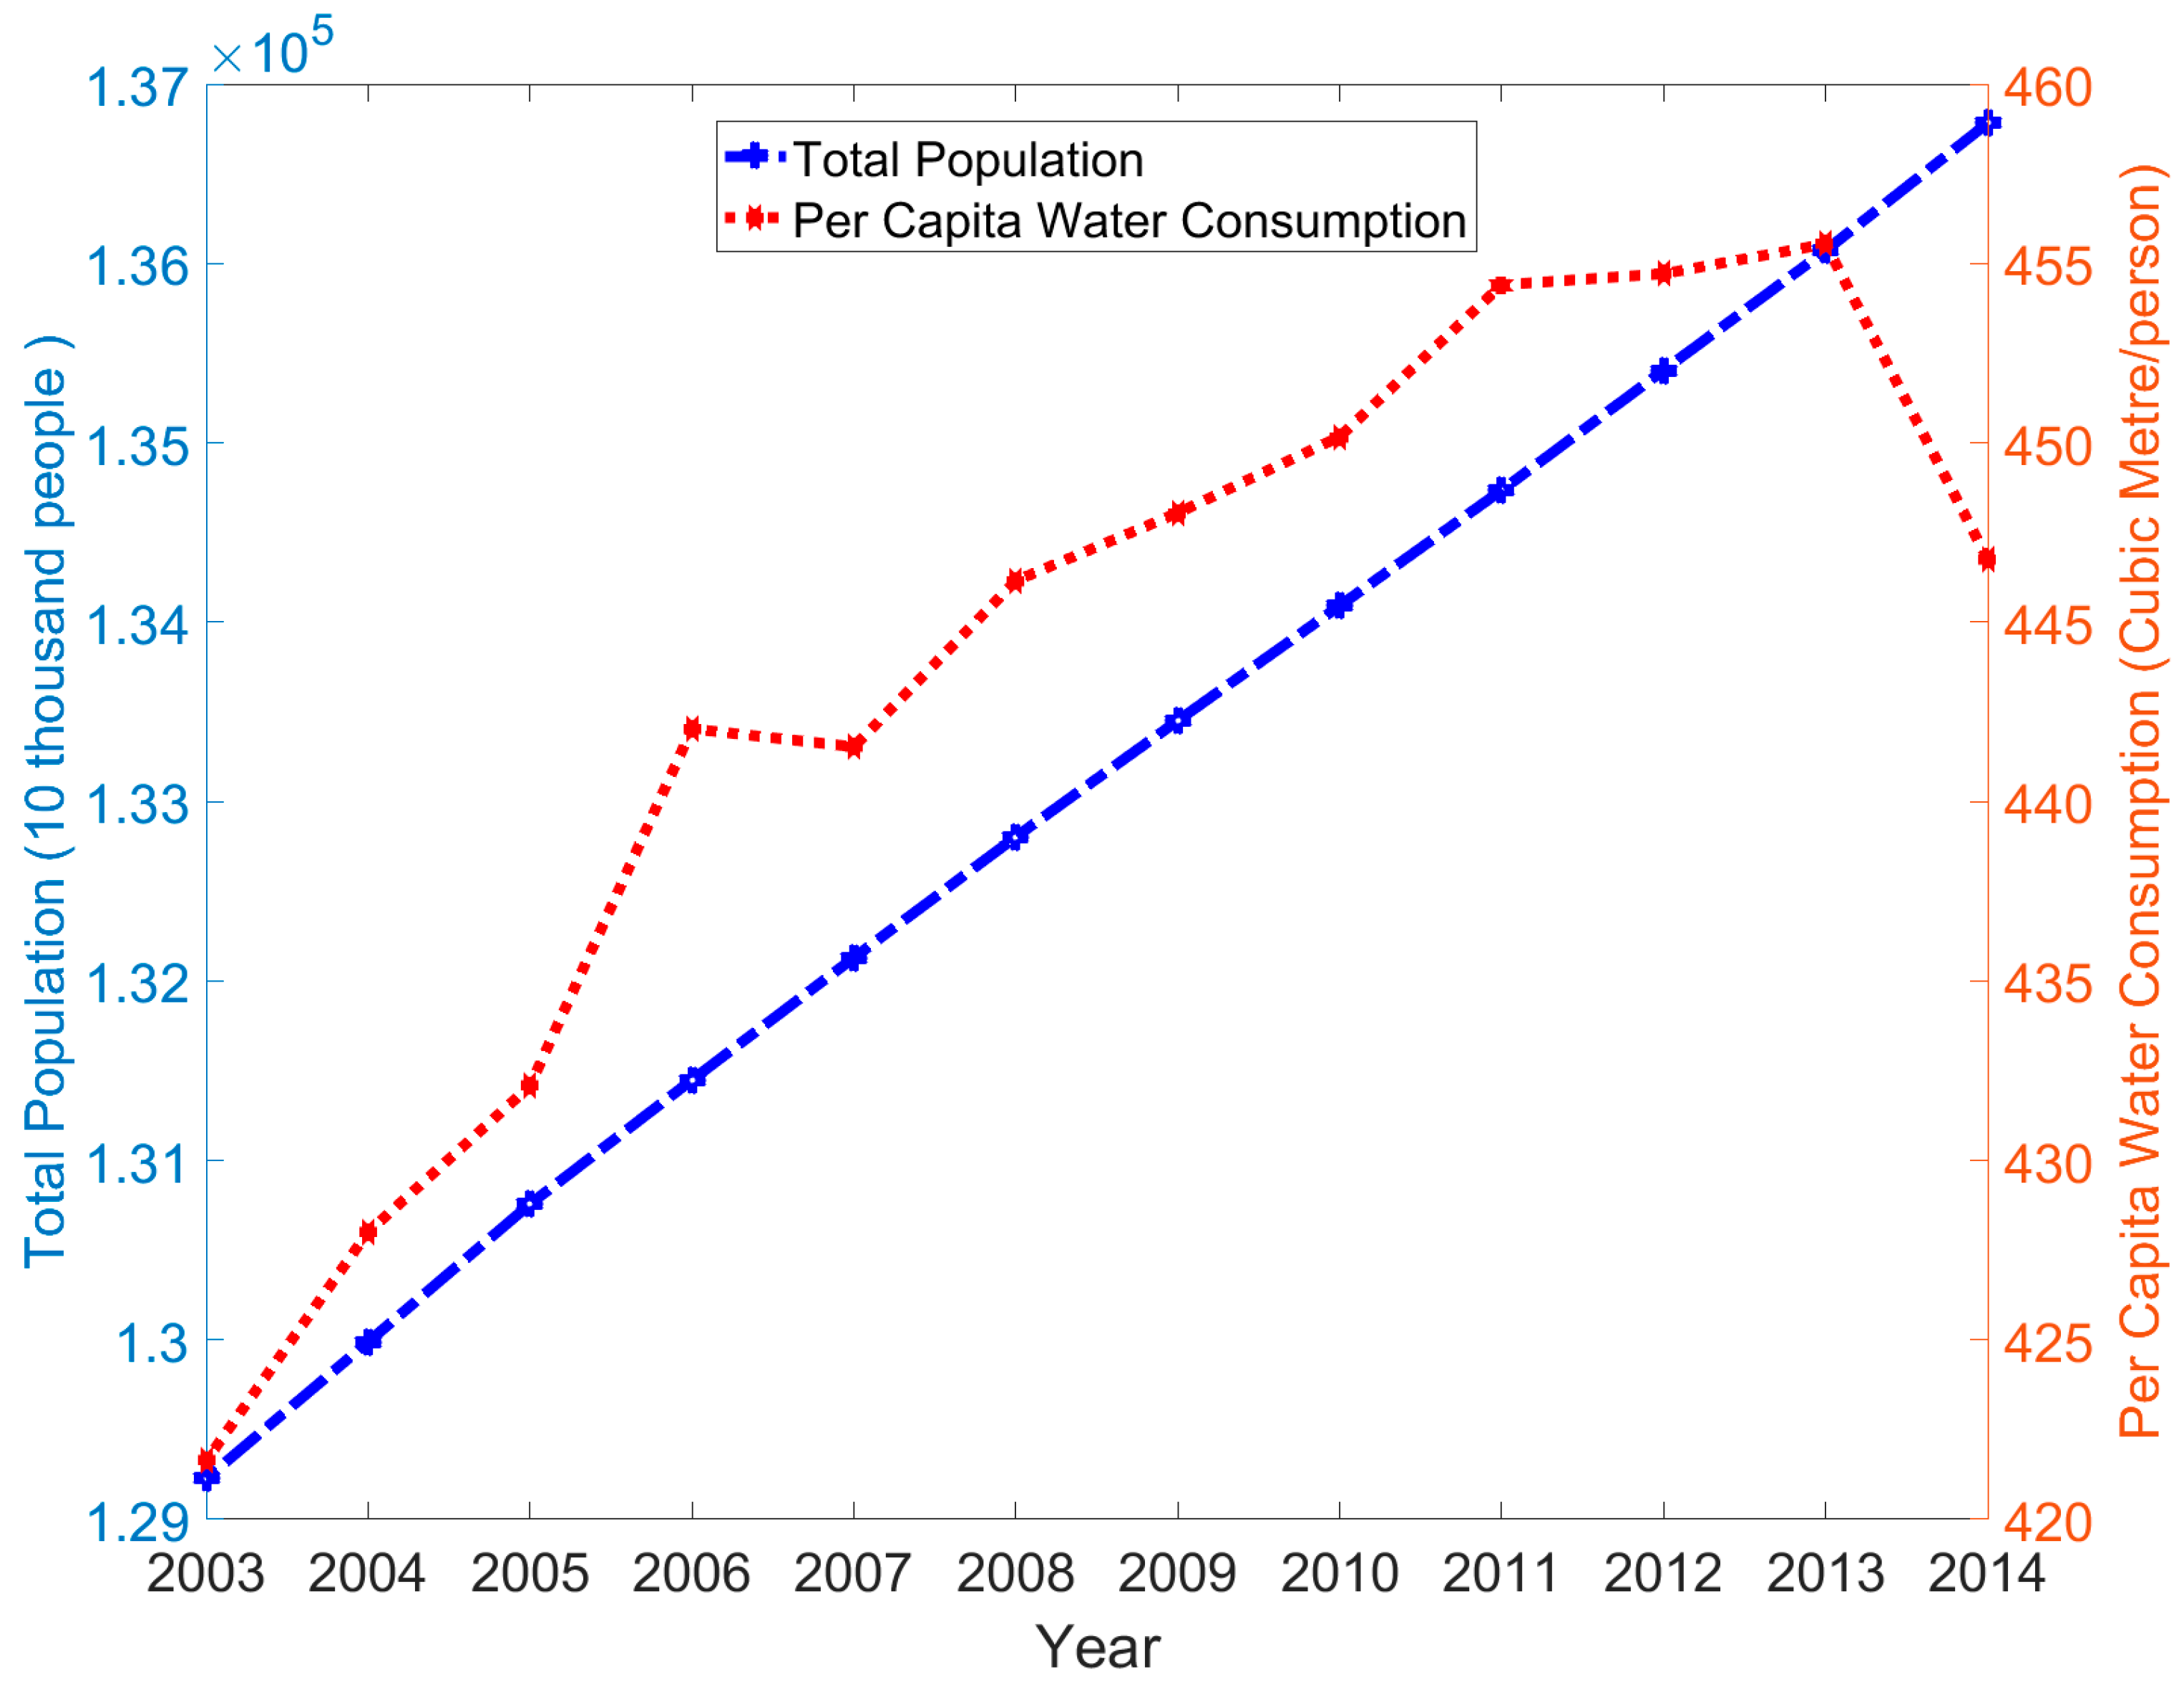 Population and water resources : a delicate balance